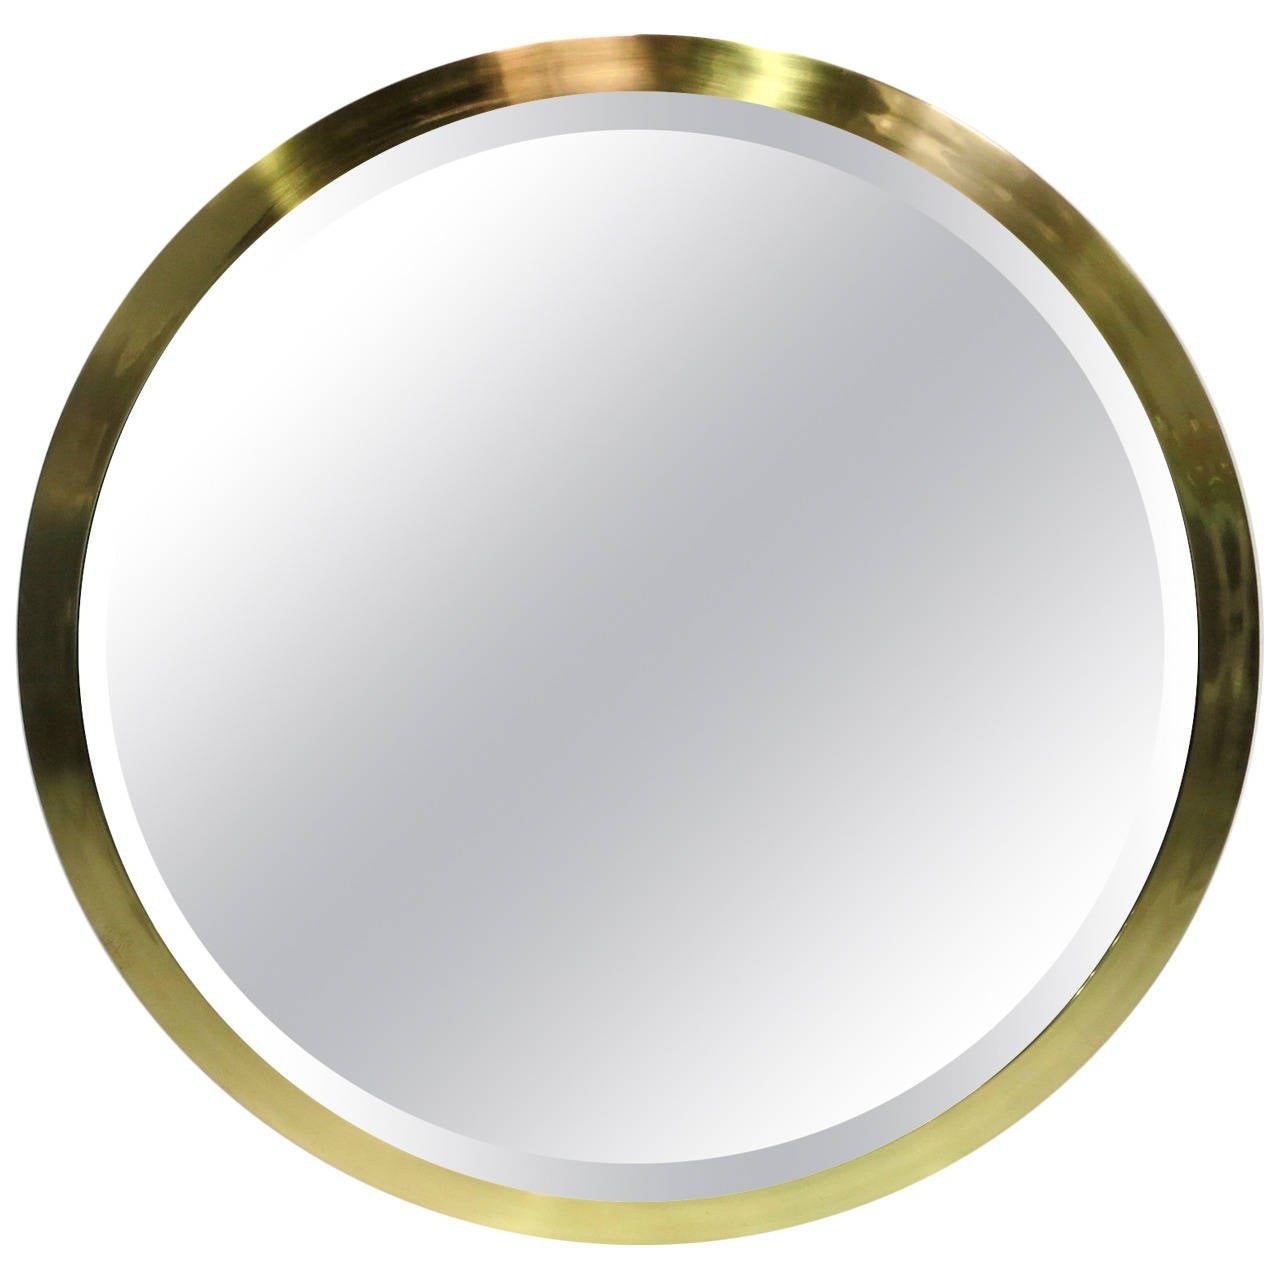 Large scale round beveled mirror with brass frame at 1stdibs for Circle mirror